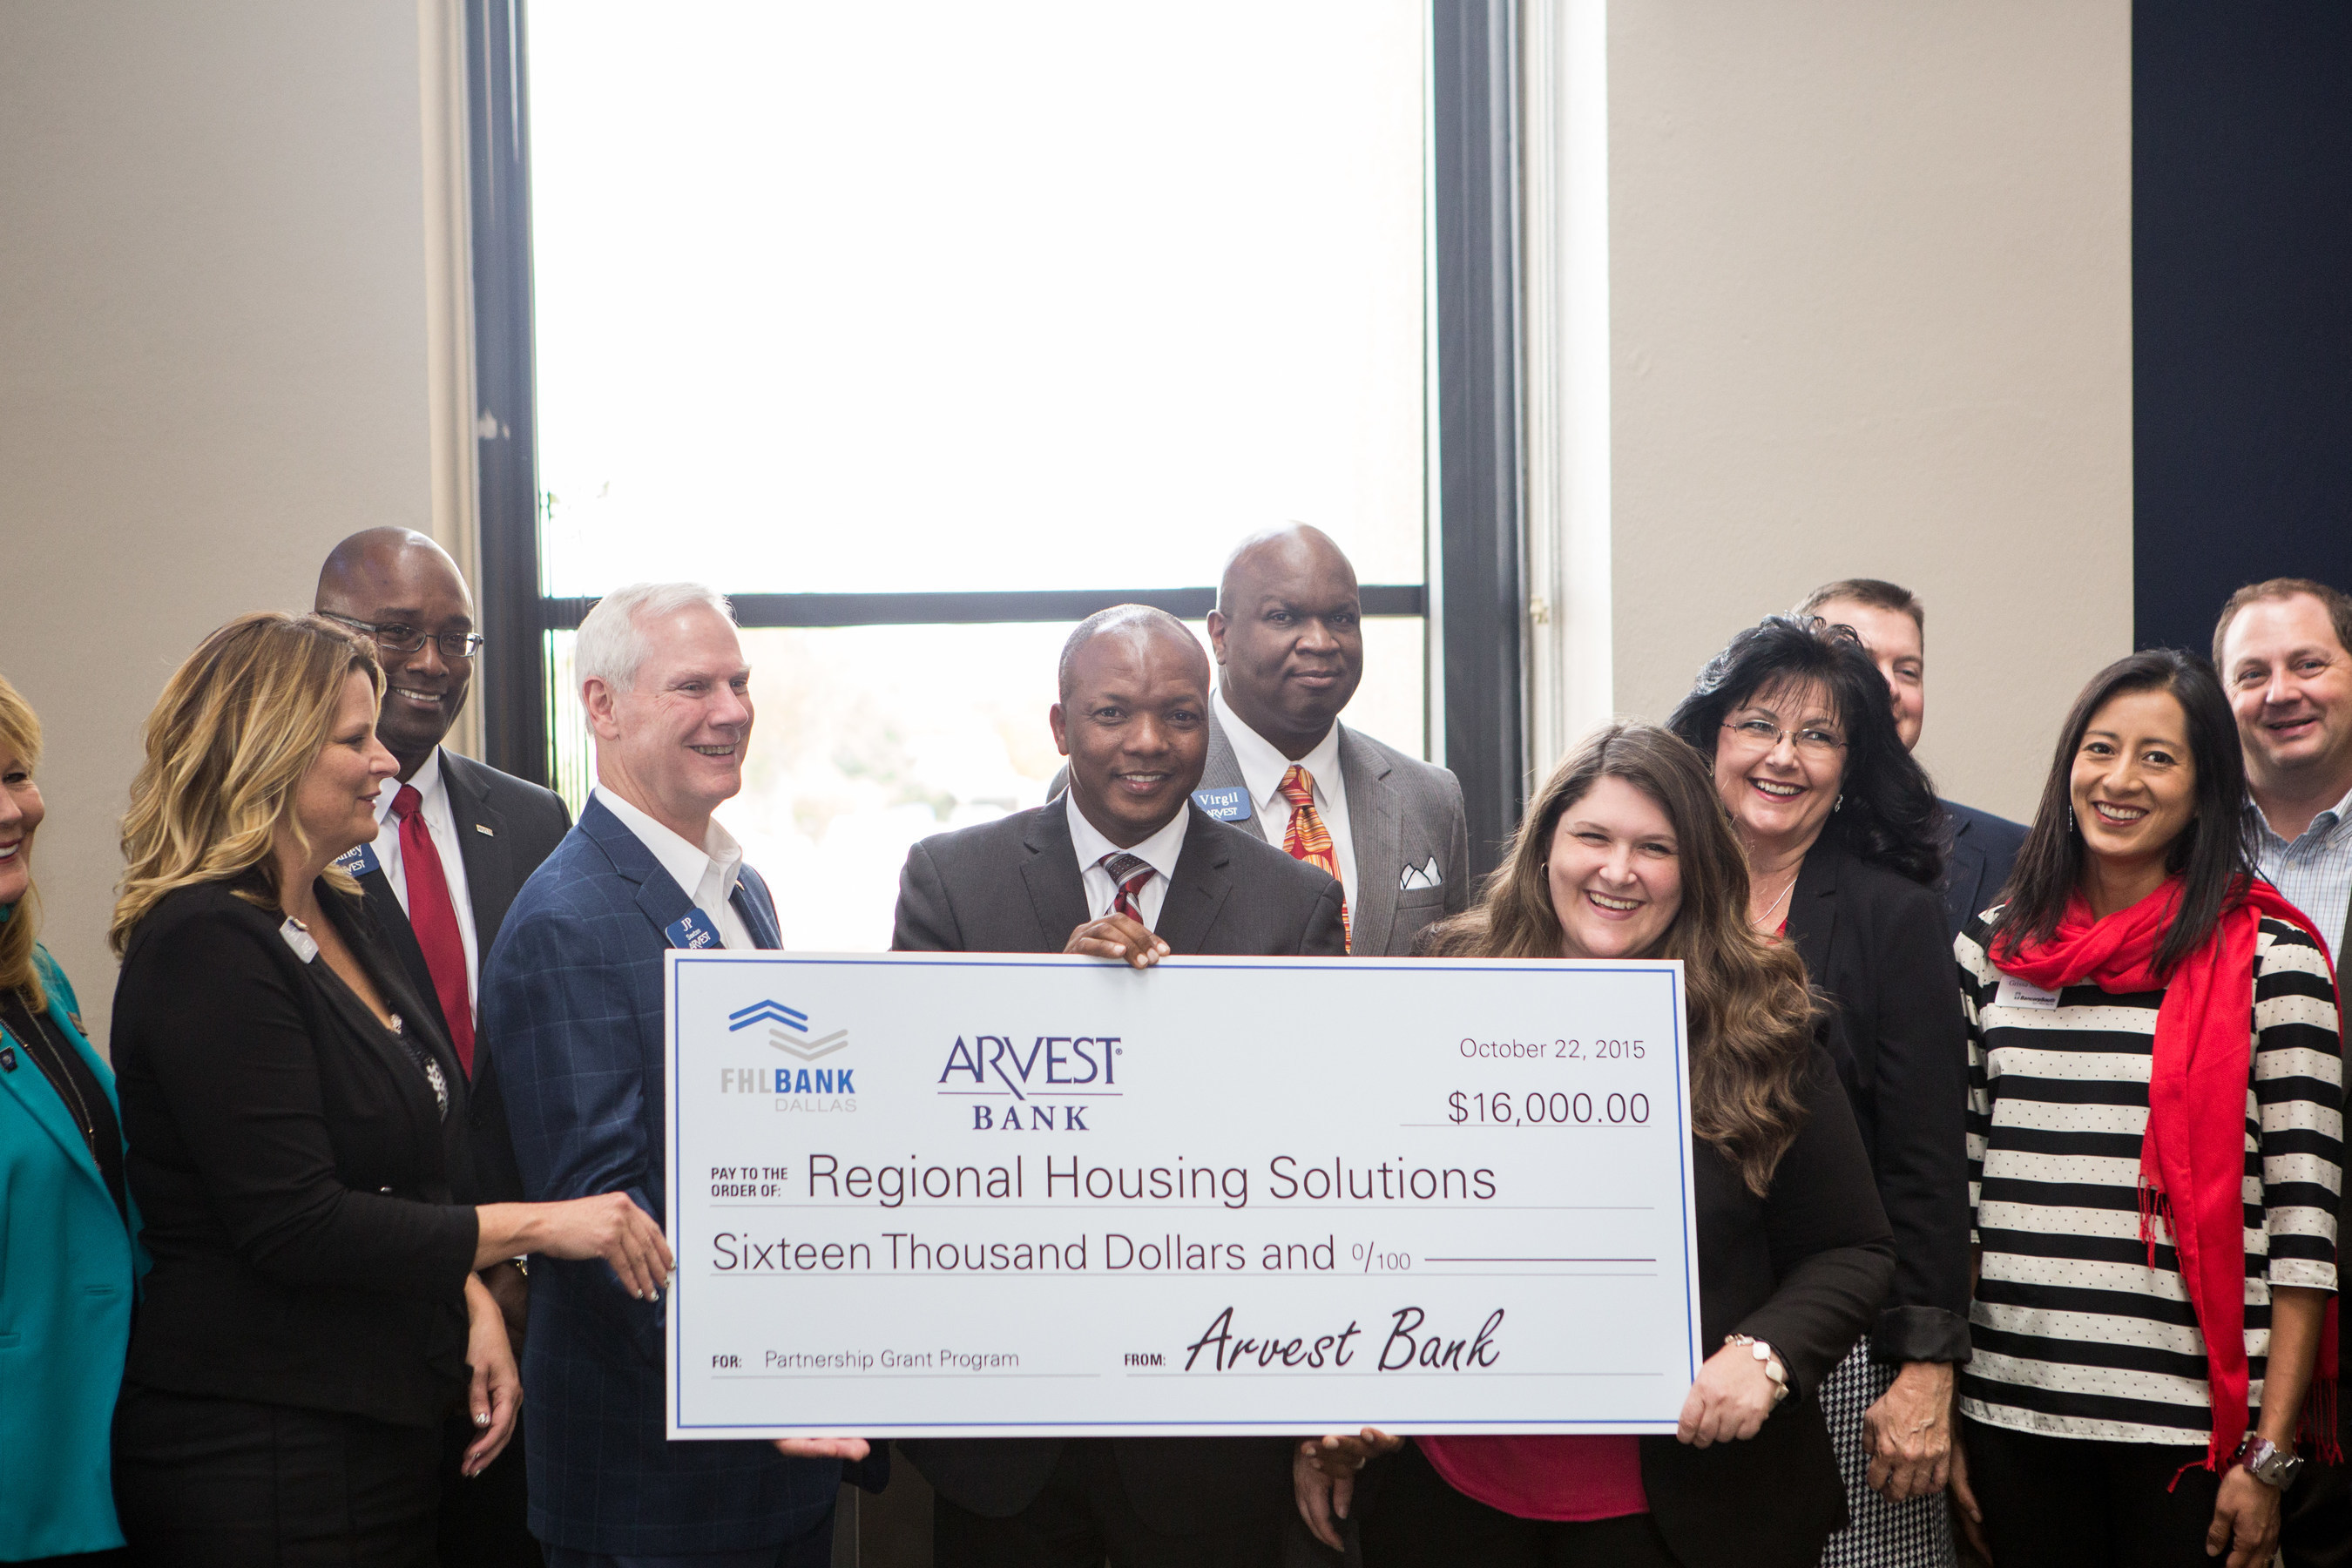 The nonprofit Regional Housing Solutions received a $16,000 Partnership Grant Program (PGP) award on October 22, 2015, from Arvest Bank and the Federal Home Loan Bank of Dallas (FHLB Dallas). The funds will be used to build organizational capacity, allowing the nonprofit to develop future housing projects for low- to moderate-income families.